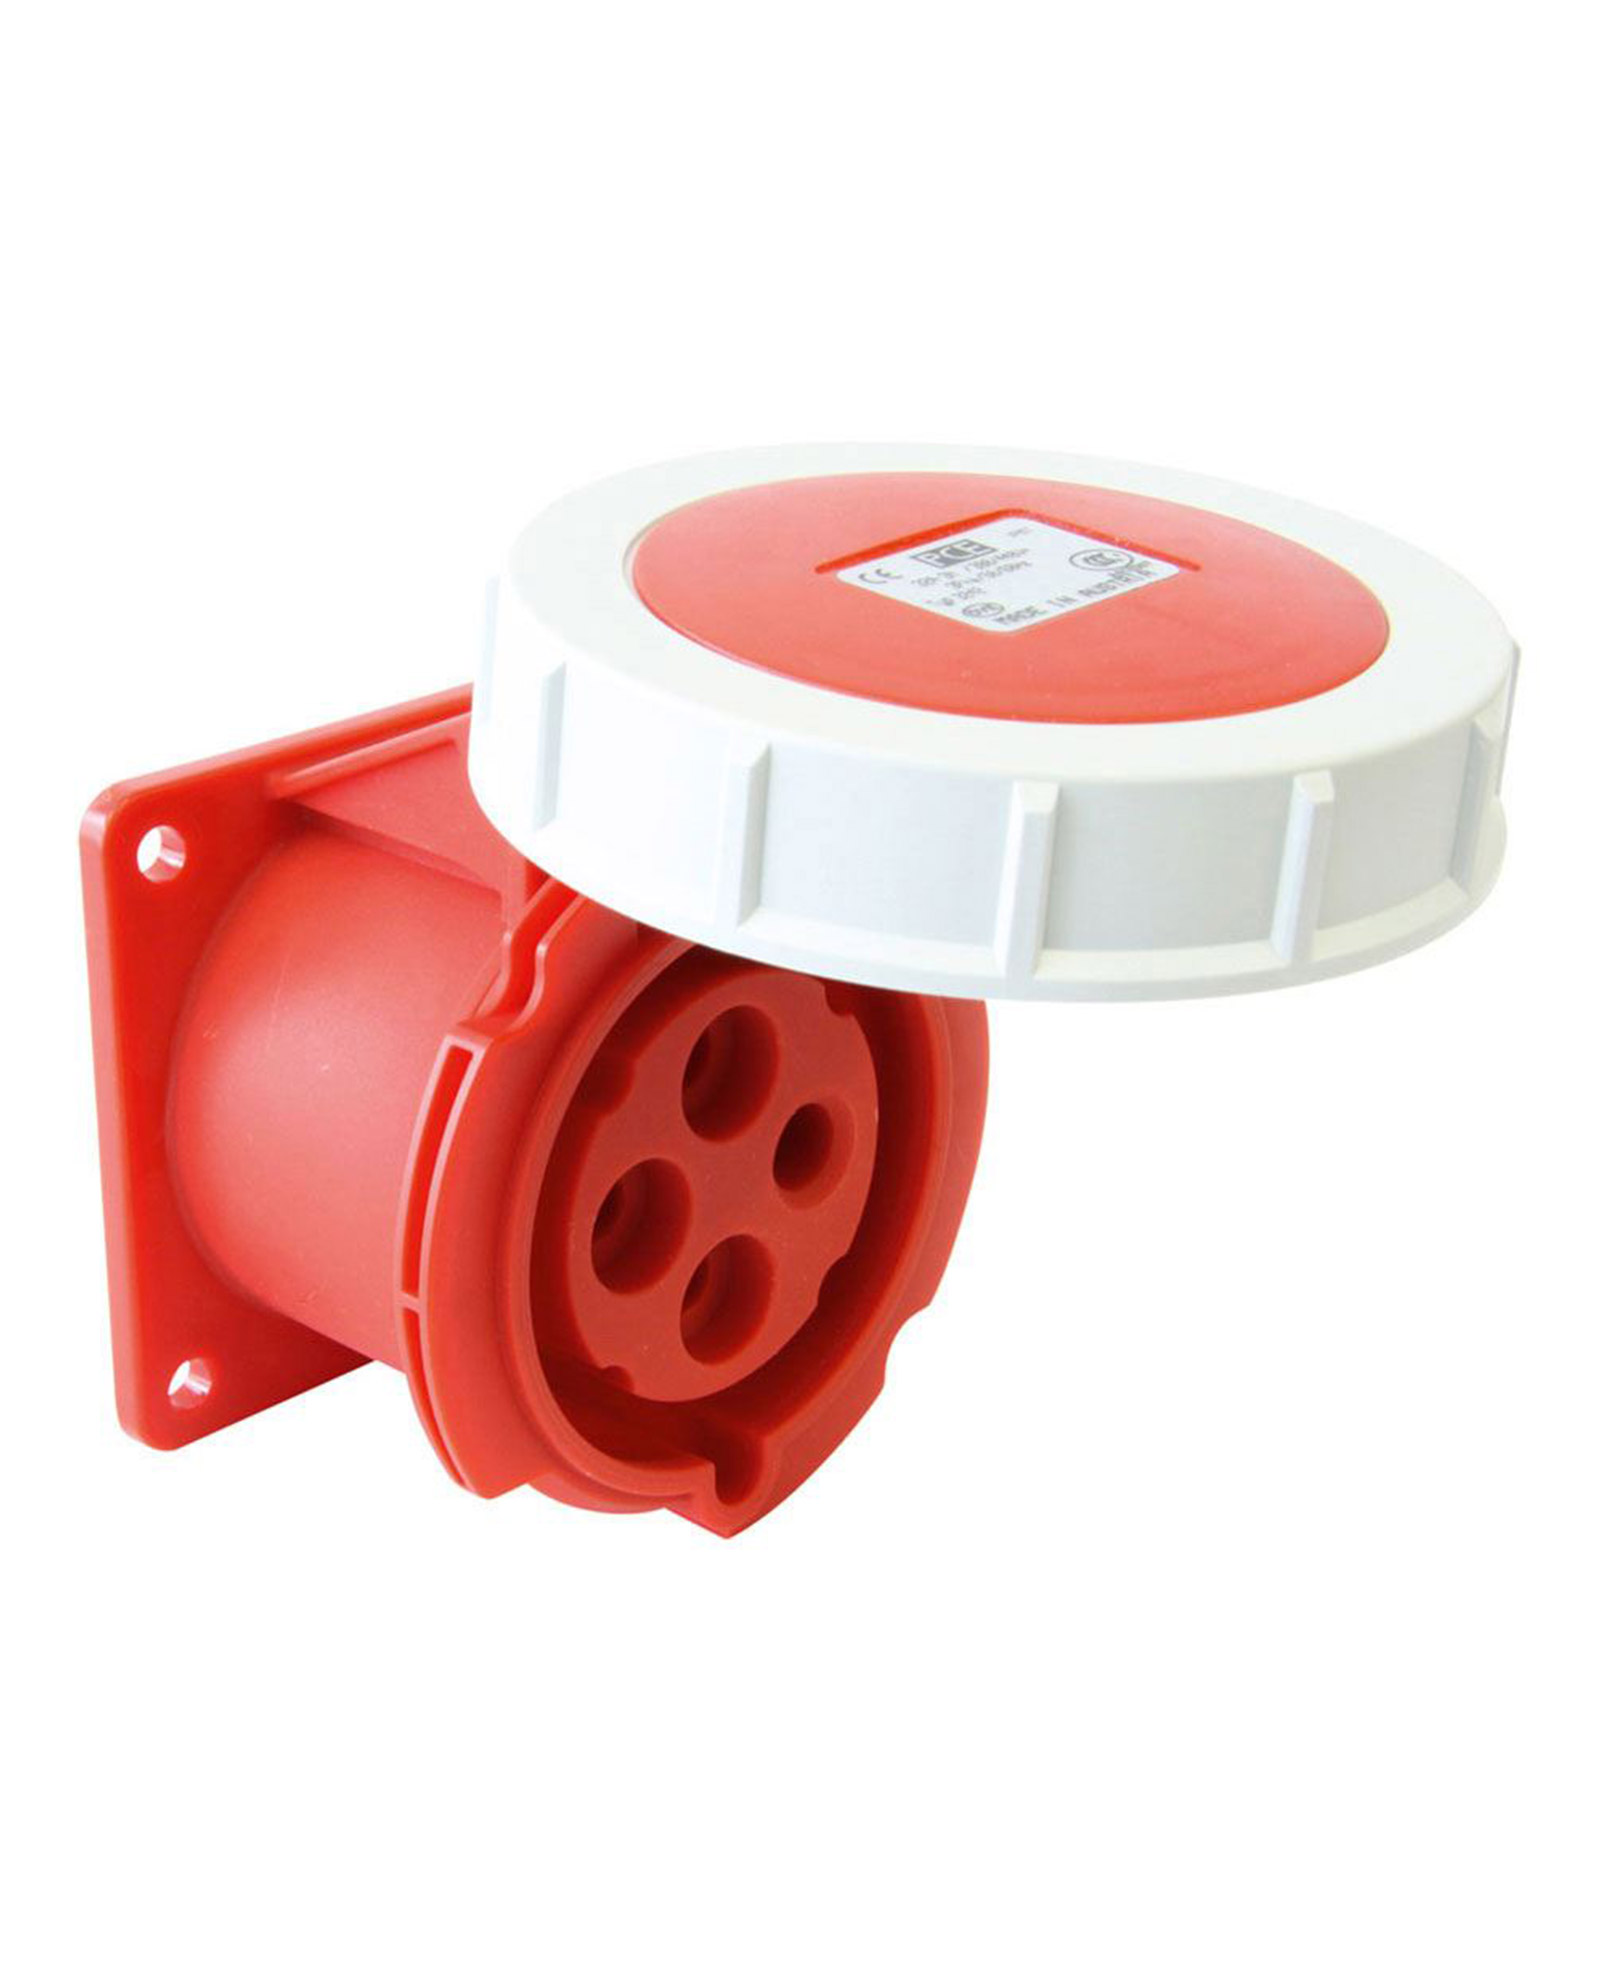 Pce Electric Cce Container Series cee Flanged Socket 32a 4p Ip67